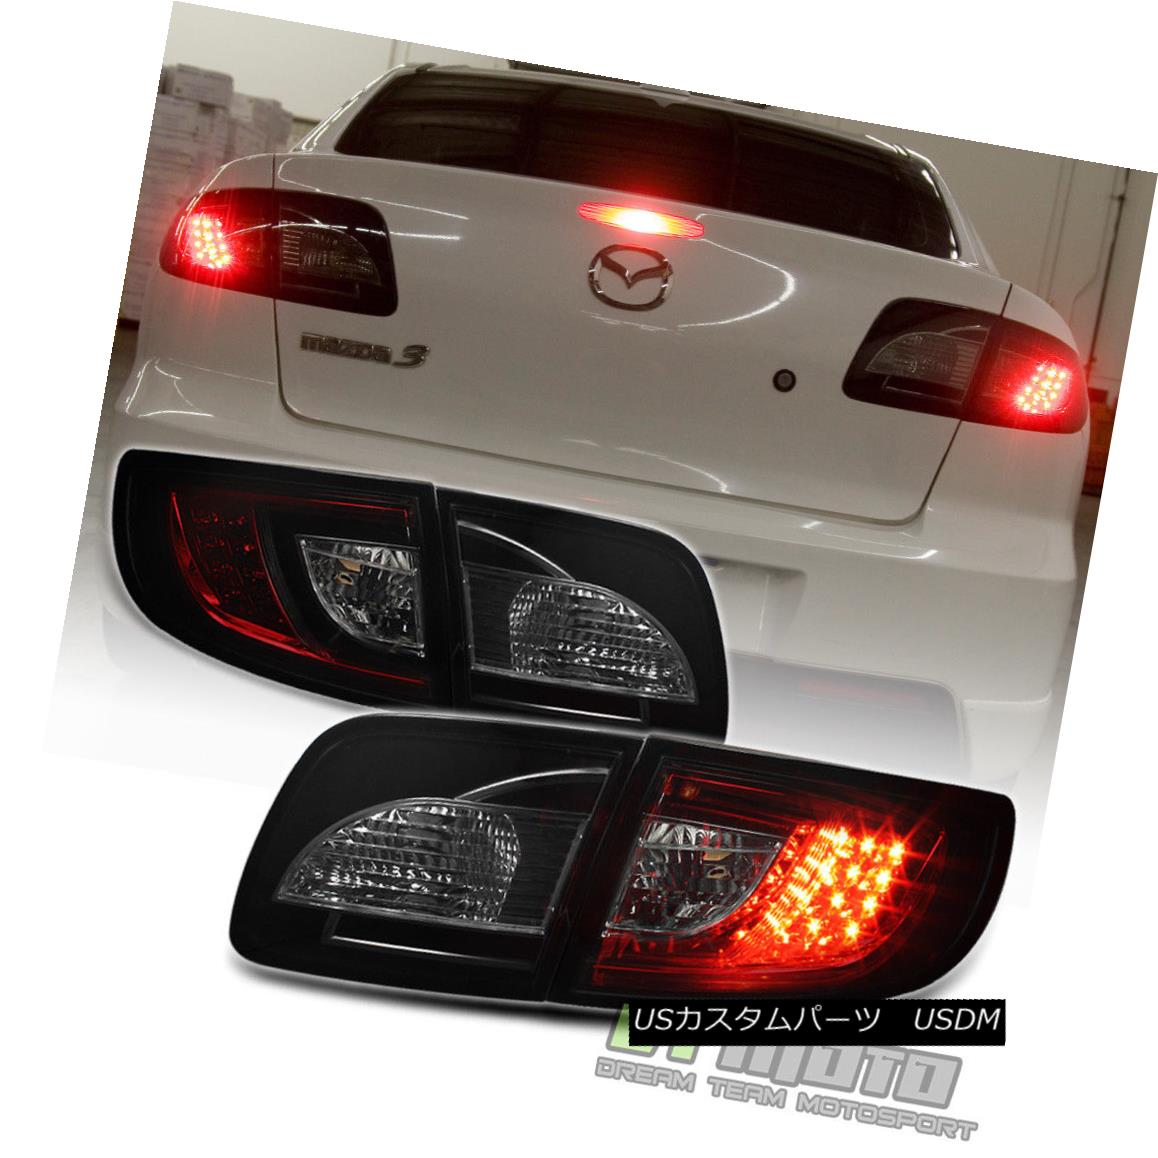 テールライト 2003-2008 Mazda 3 Mazda3 Lumileds LED Red Smoked Tail Lights Lamps Left+Right 2003-2008マツダ3 Mazda3 Lumileds LEDレッドスモークテールライトランプ左+右